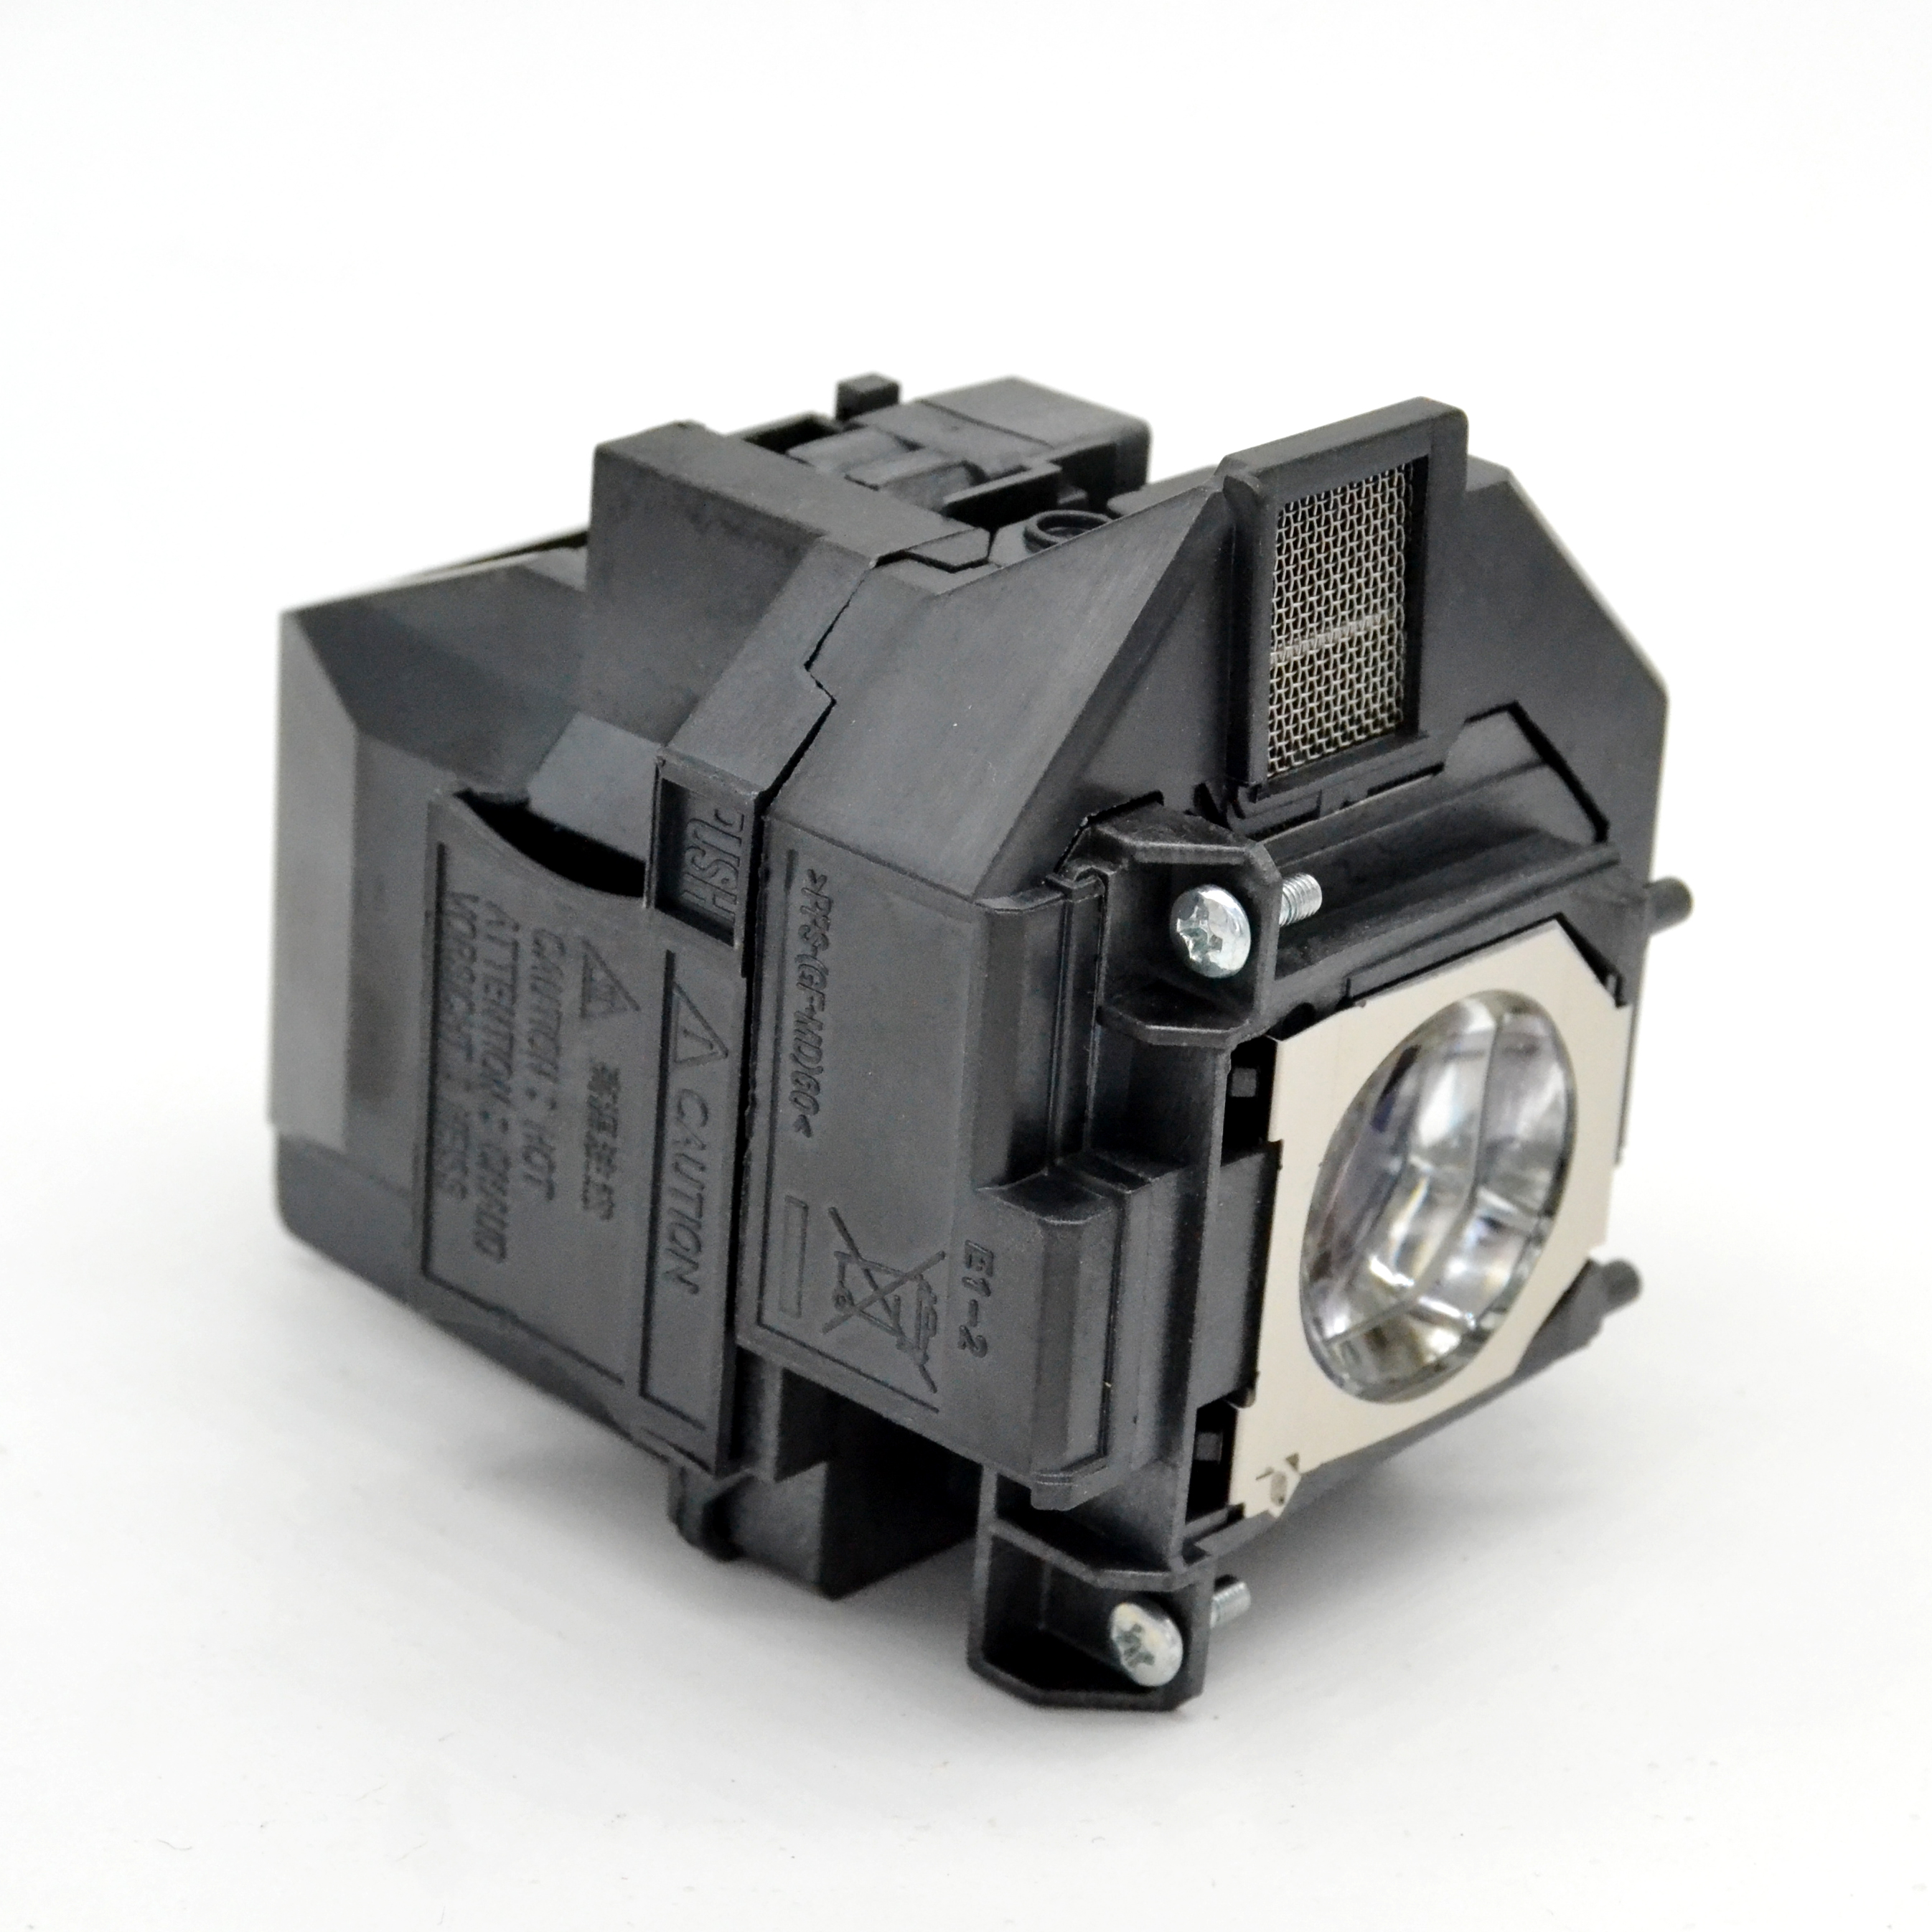 ELPLP96 Original Projector Lamp With Housing For EH-TW5650/EH-TW5600/EB-X41/EB-W42/EB-W05/EB-U42/EB-U05/EB-S41/EB-W39/EB-S39